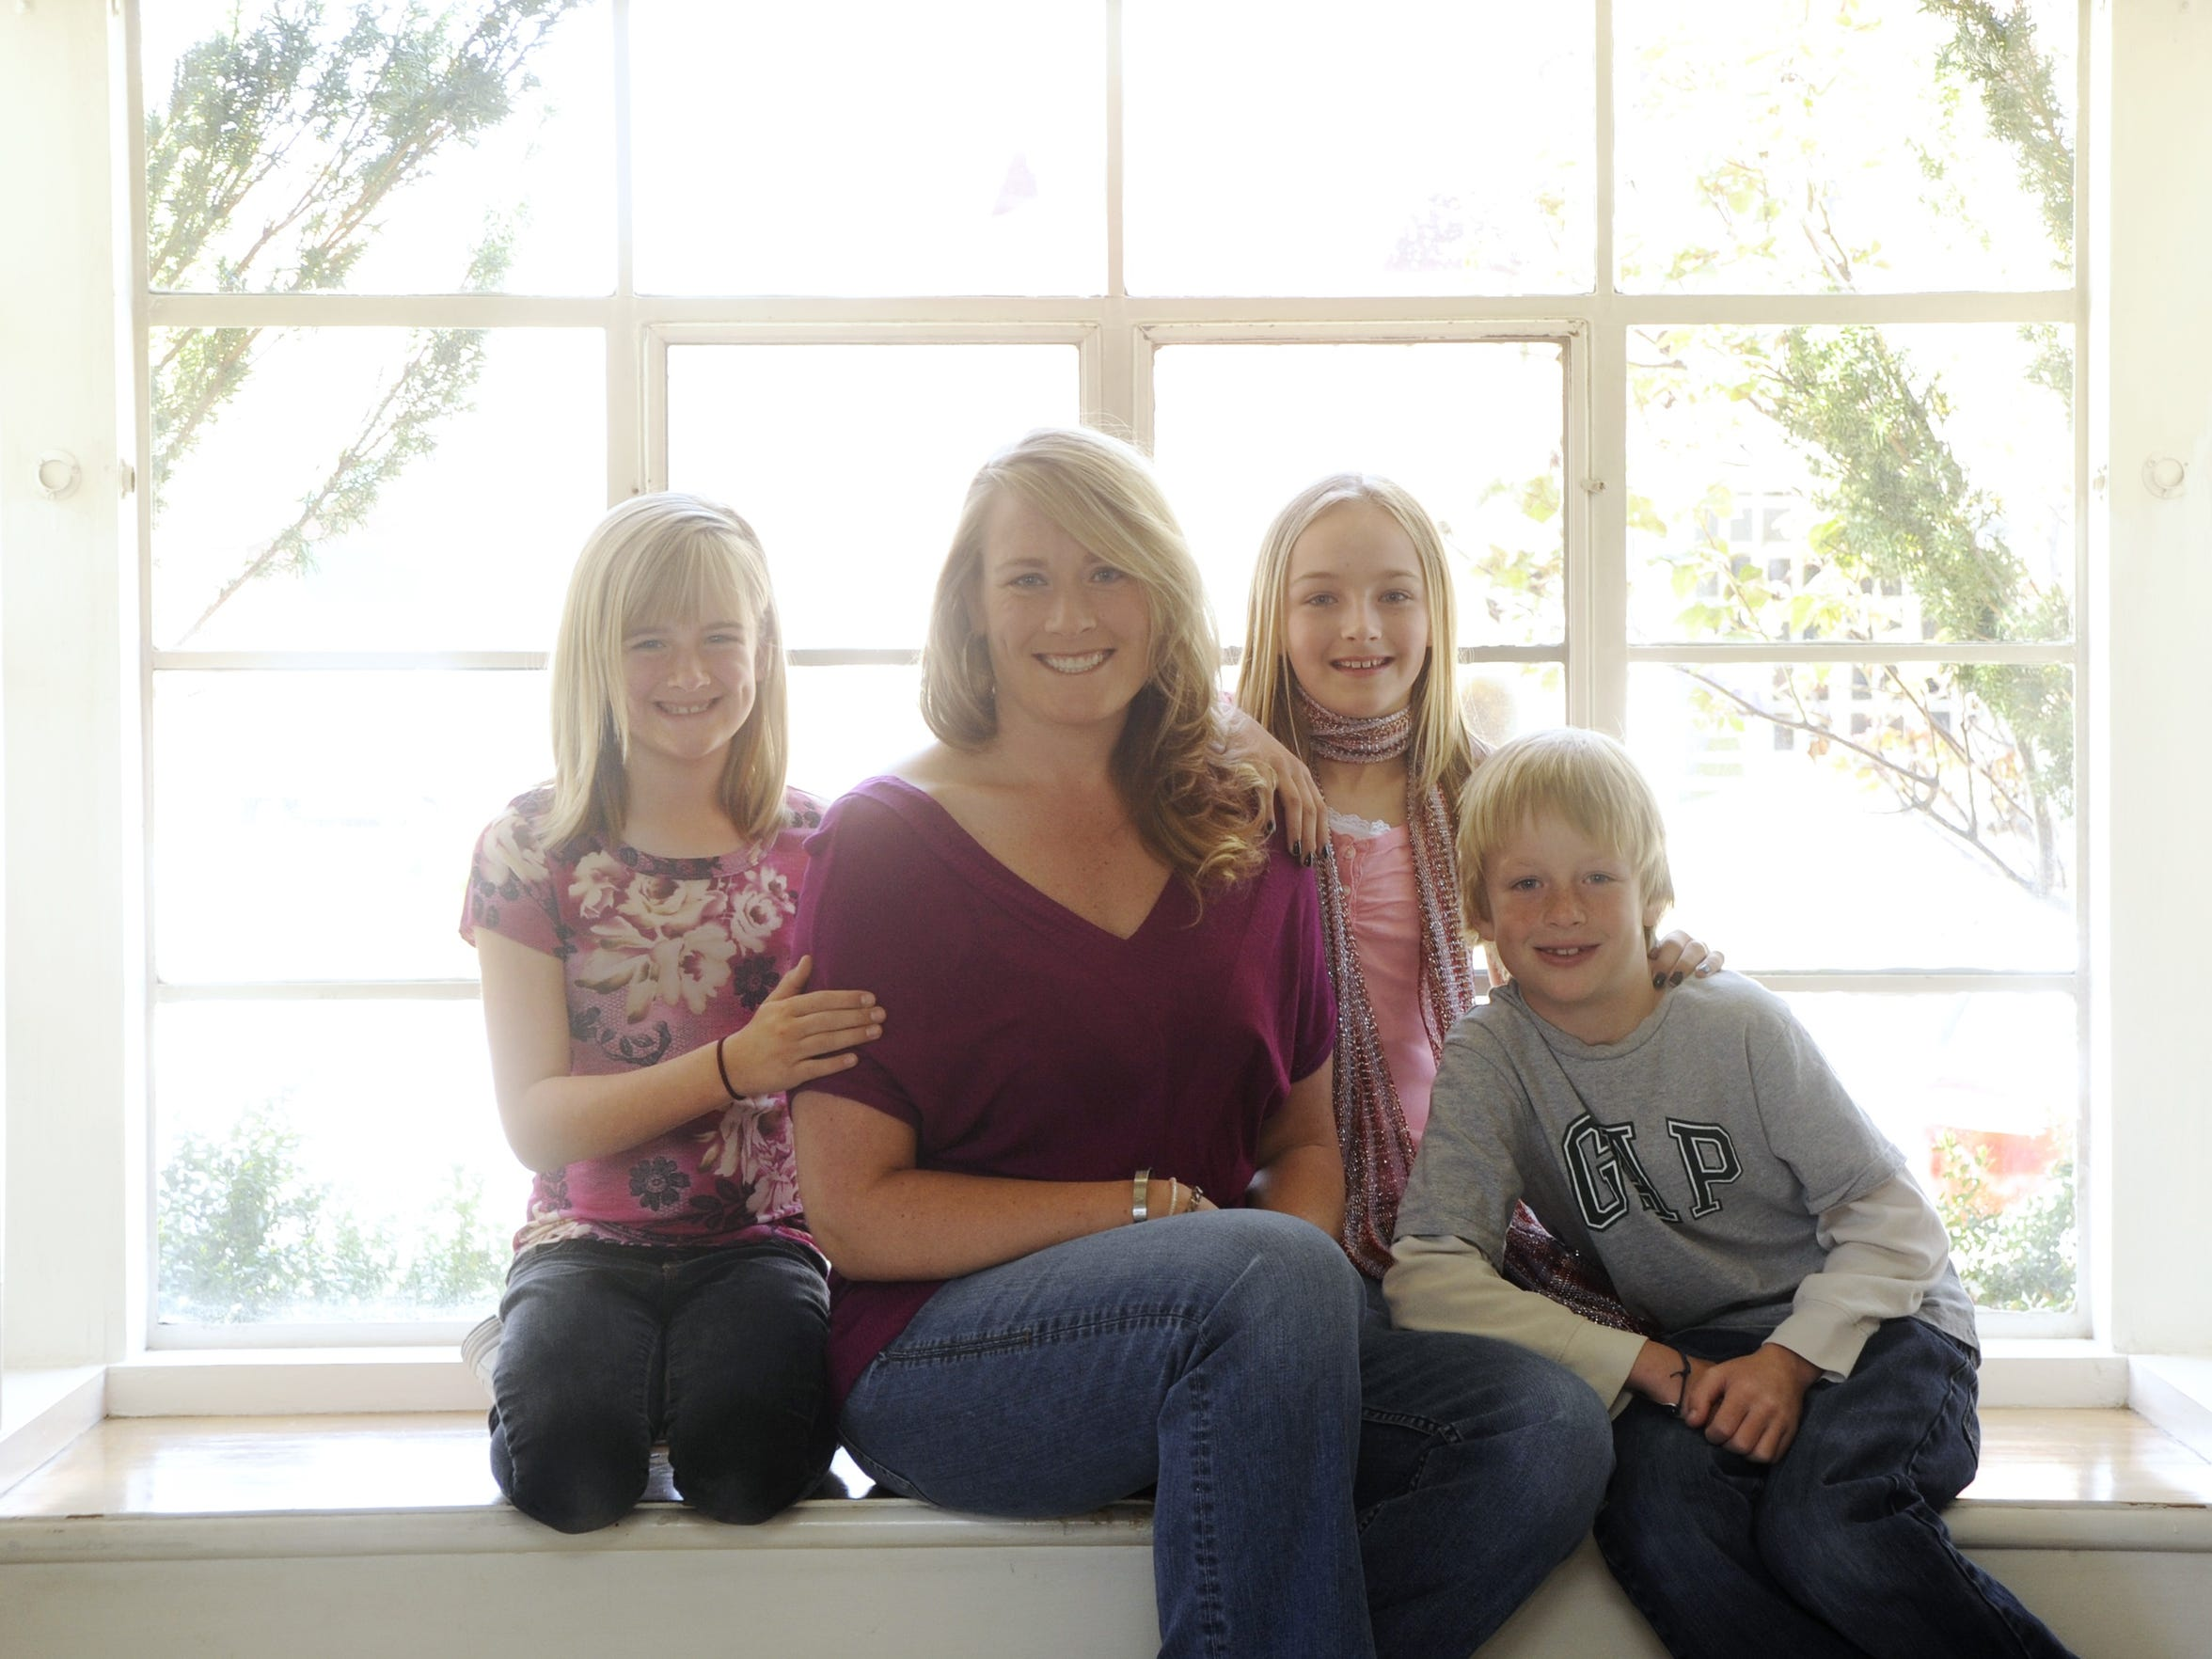 Emily Reese of Reno sits with her children Kate, 9, Maddie, 11, and Thomas, 8, at their home on May 1, 2011. Reese, who was recently diagnosed with colon cancer, was honored by her daughters who each wrote a haiku for the Reno Gazette-Journal Mother's Day haiku contest.